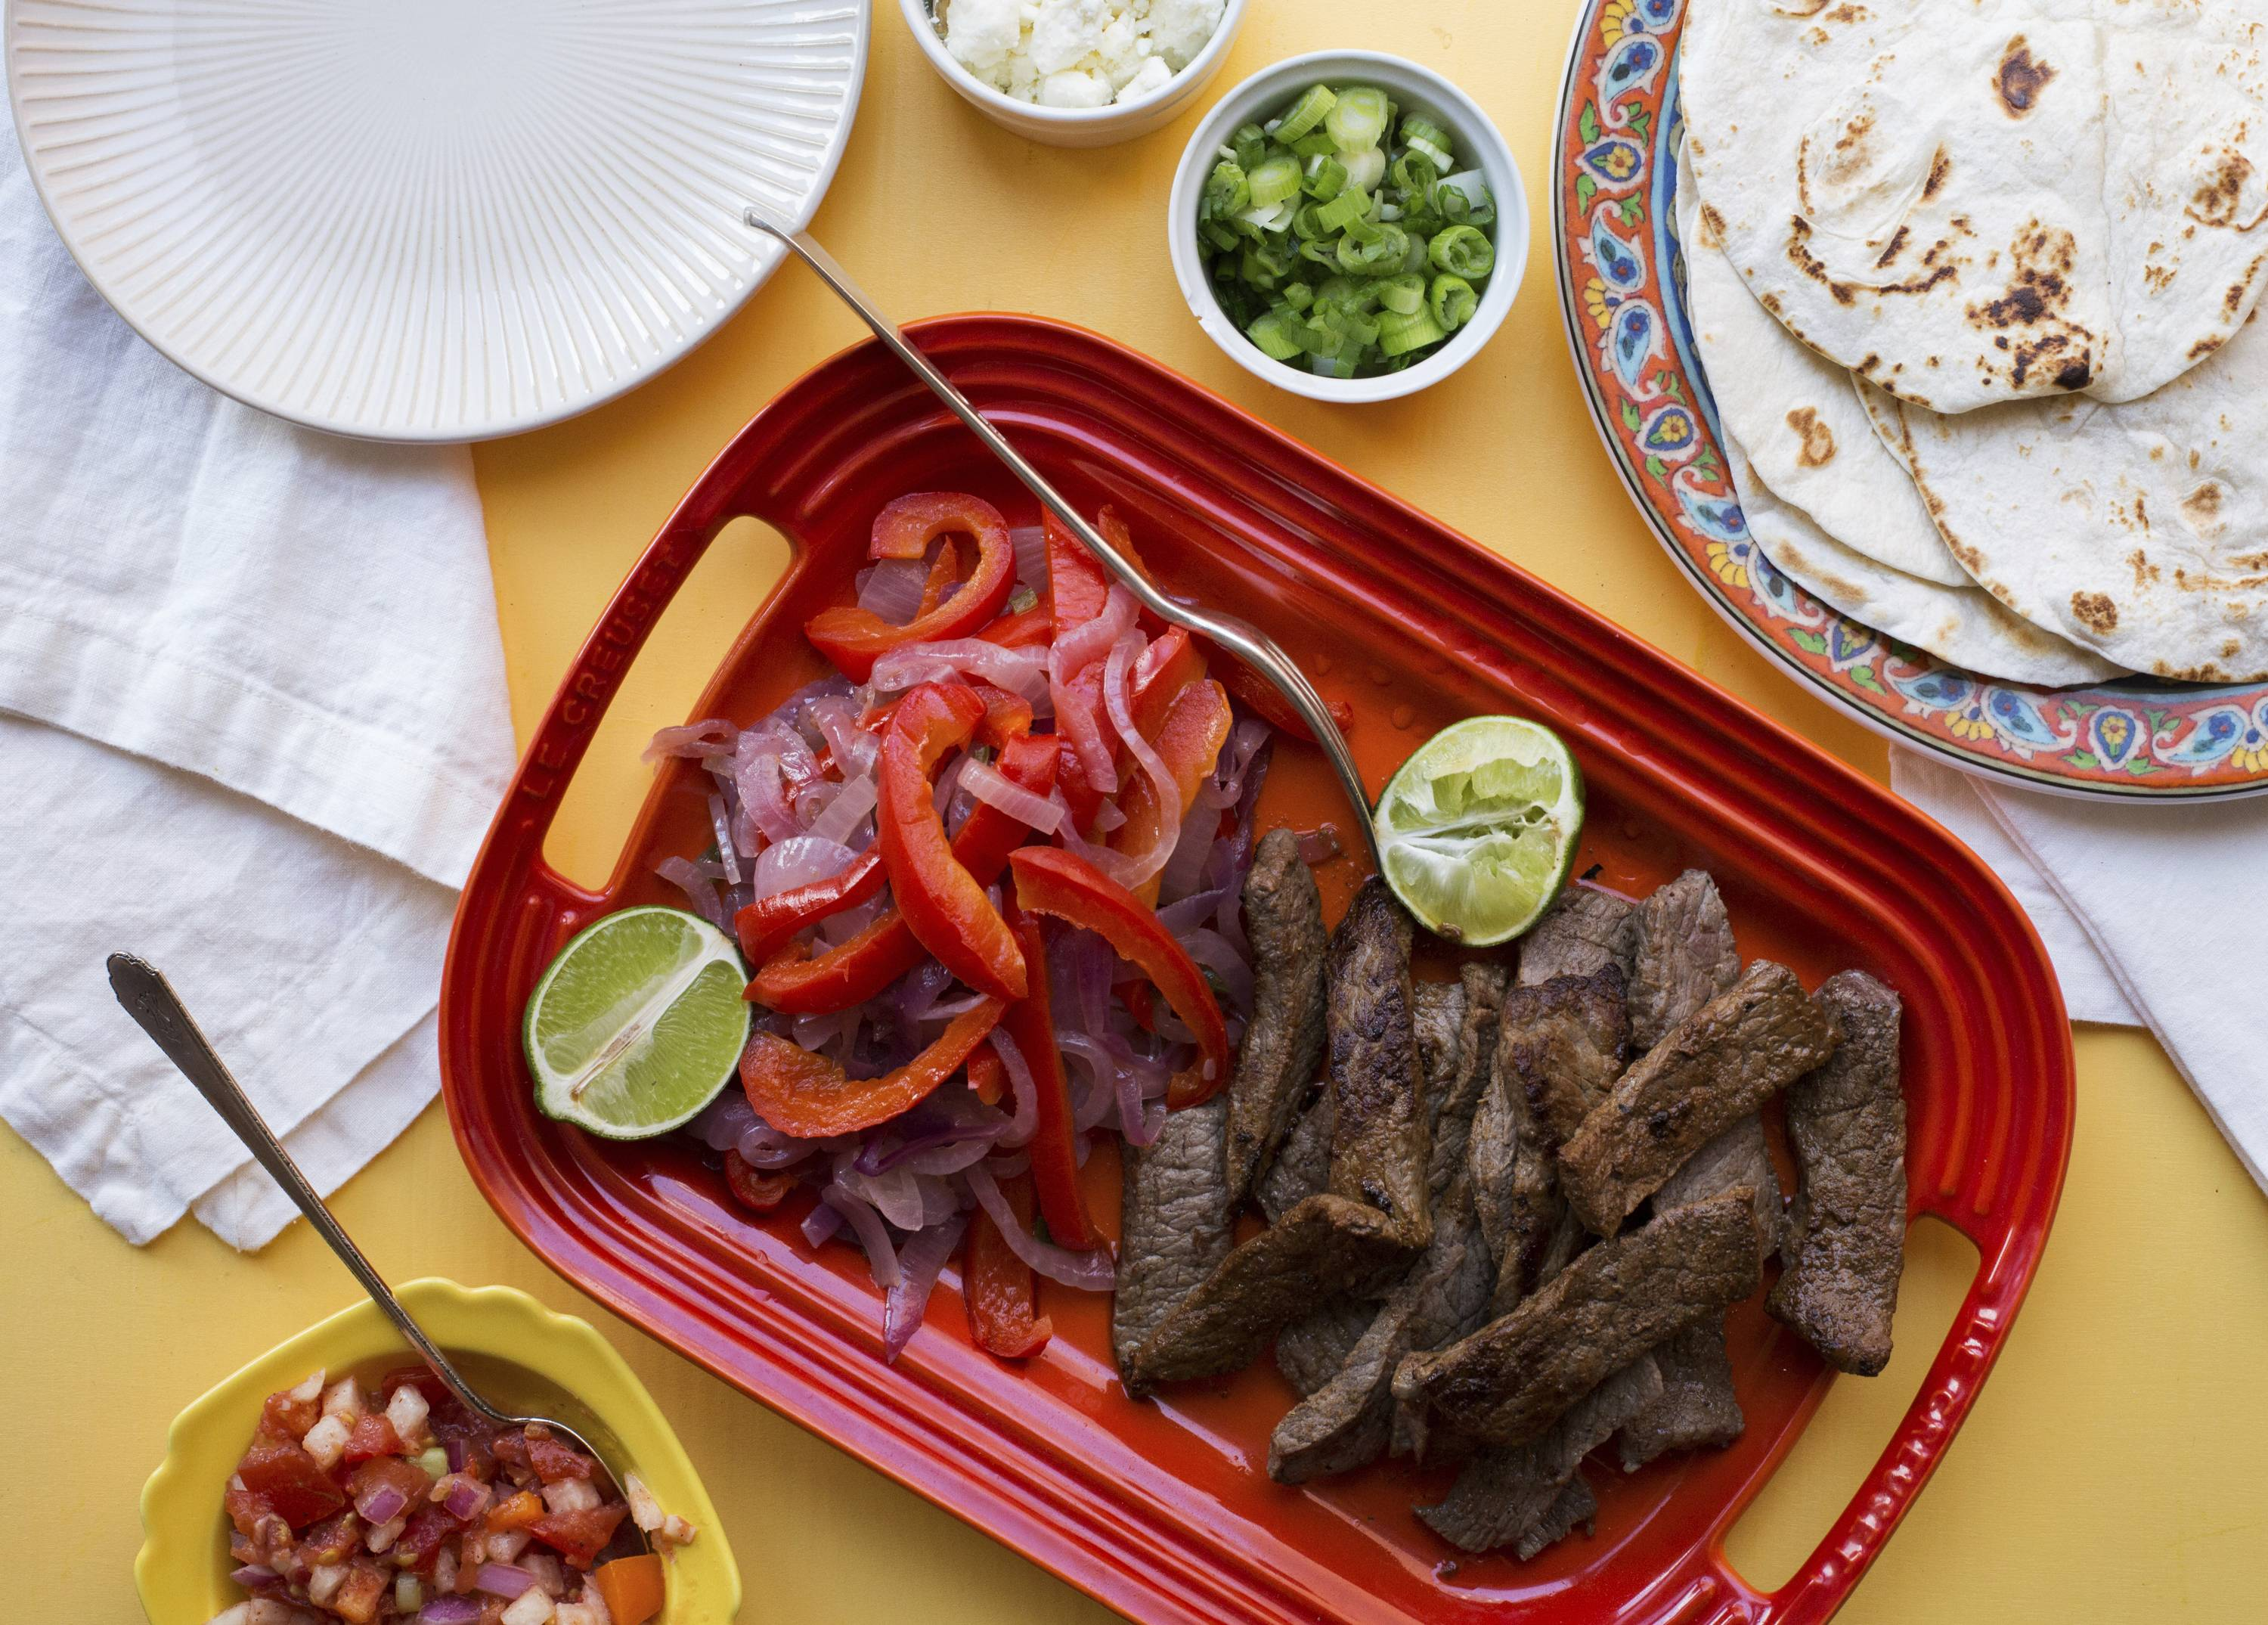 DIY Super Bowl buffet: Steak fajitas are sure to score with fans